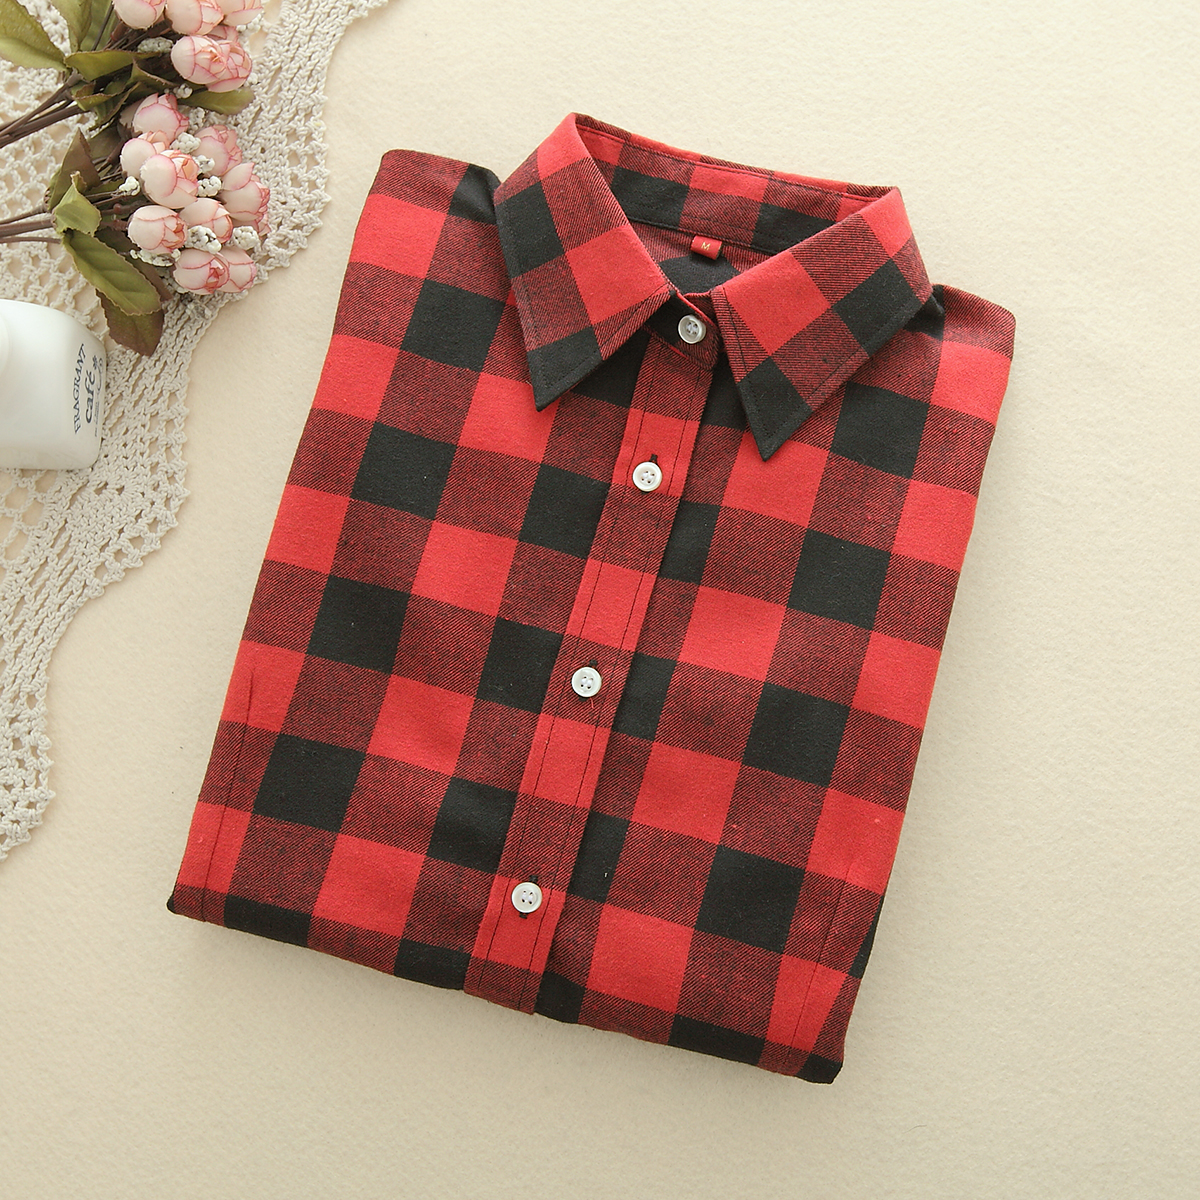 2019 Fashion Plaid Shirt Dames College-stijl Dames Blouses Lange mouw Flanellen overhemd Plus-size katoen Blusas Office-tops